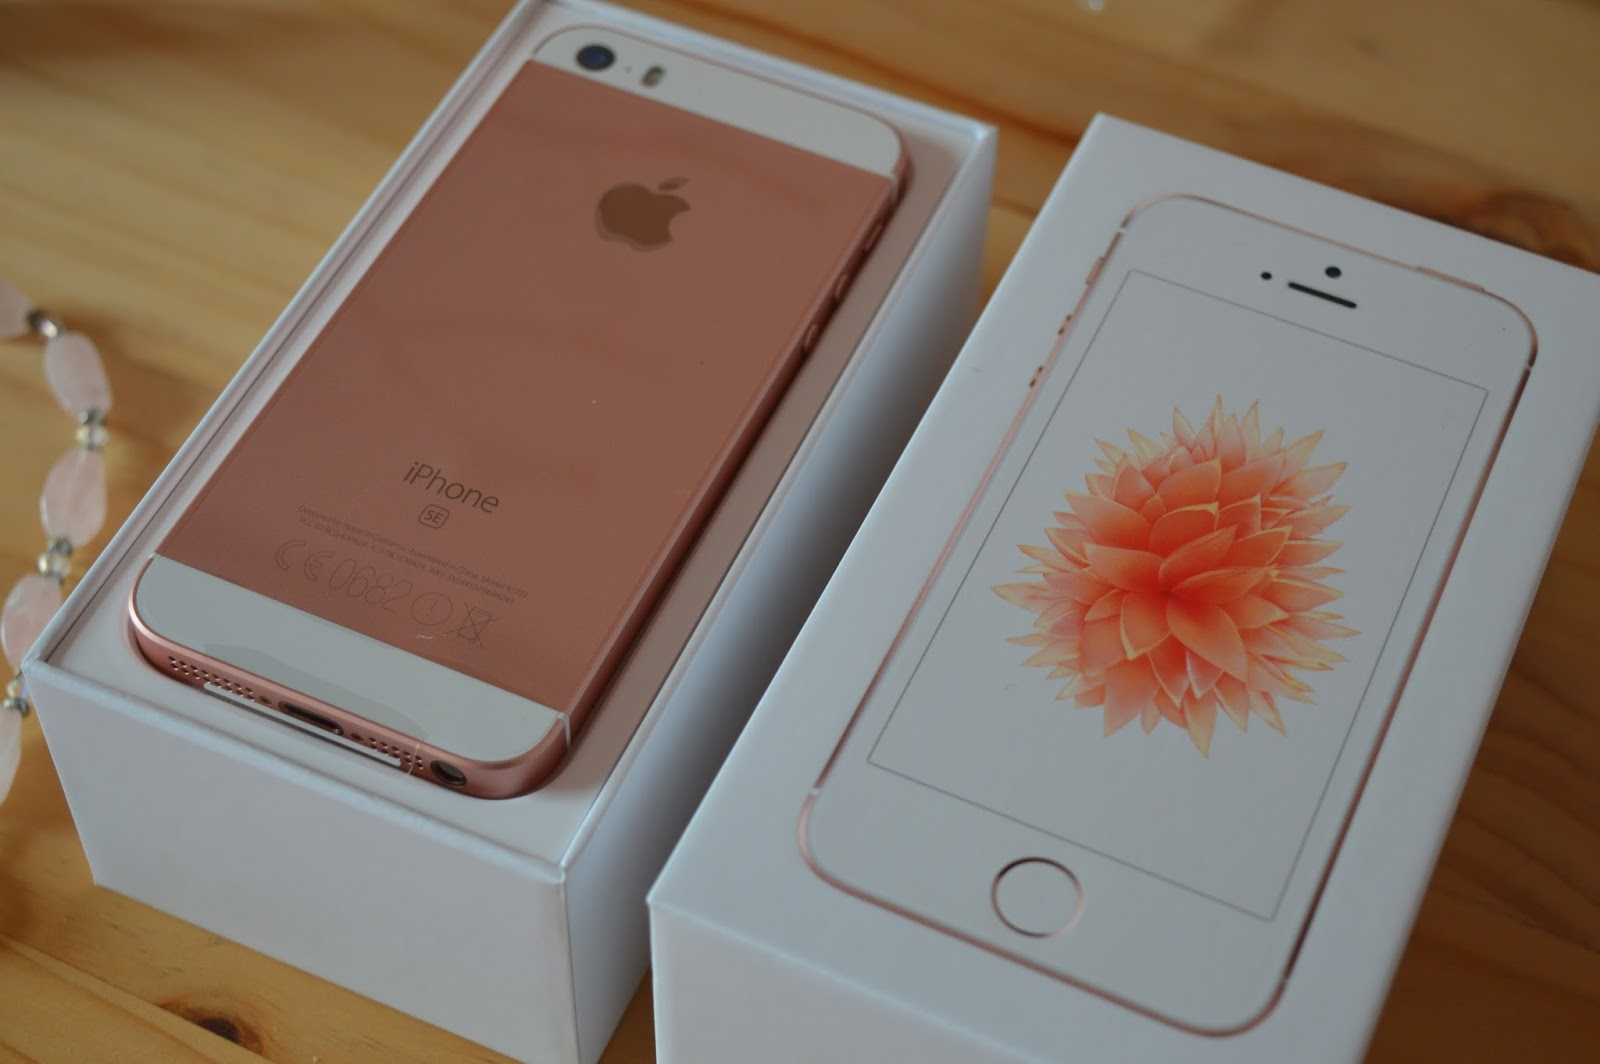 The Colour Carousel Uk Beauty Blog Apple Iphone Se 64gb Rose Gold 5s Unboxing